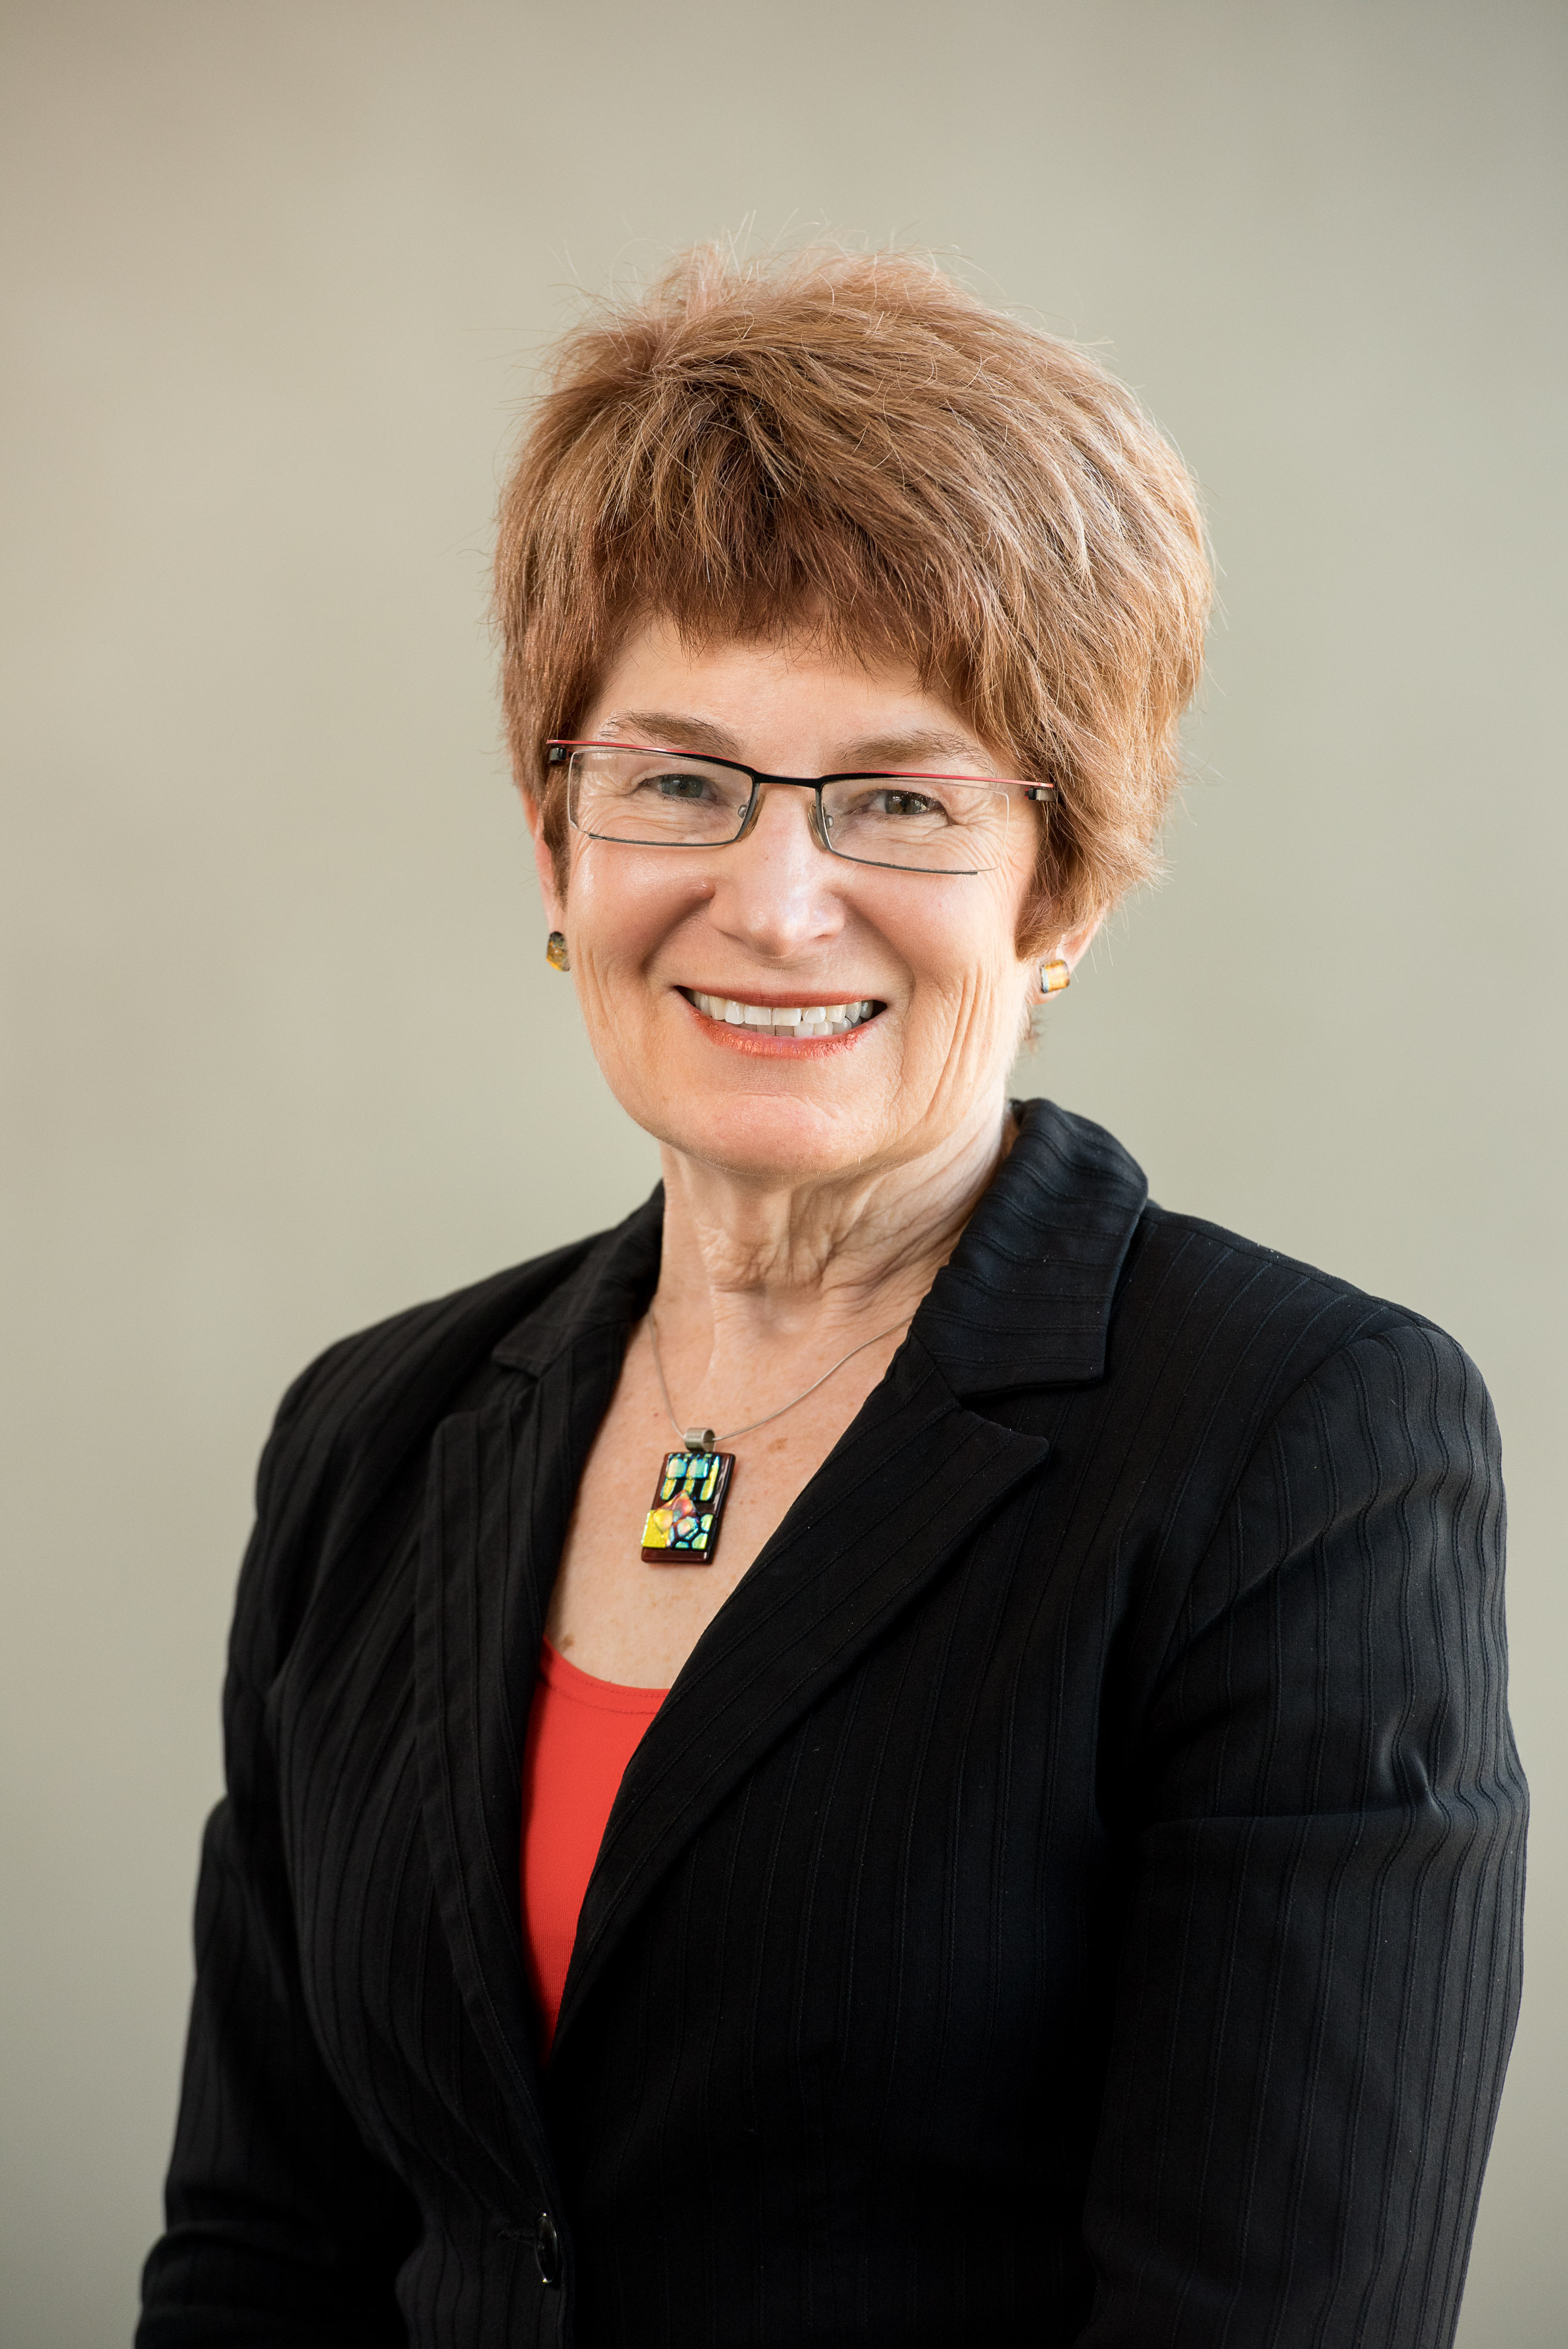 Profile picture of Cathy Humphreys